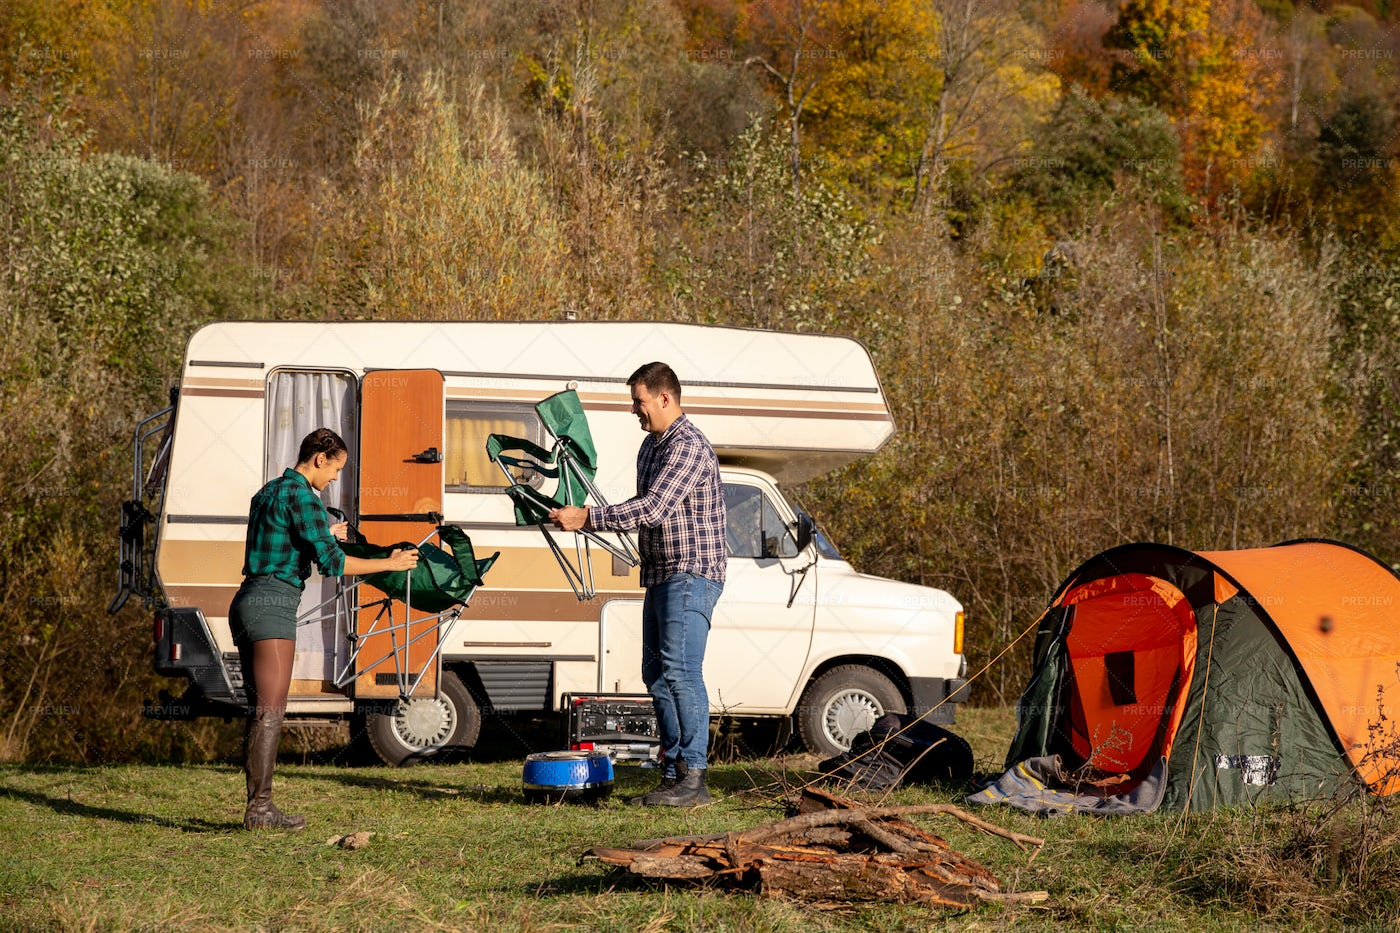 Campers Unfolding Chairs: Stock Photos